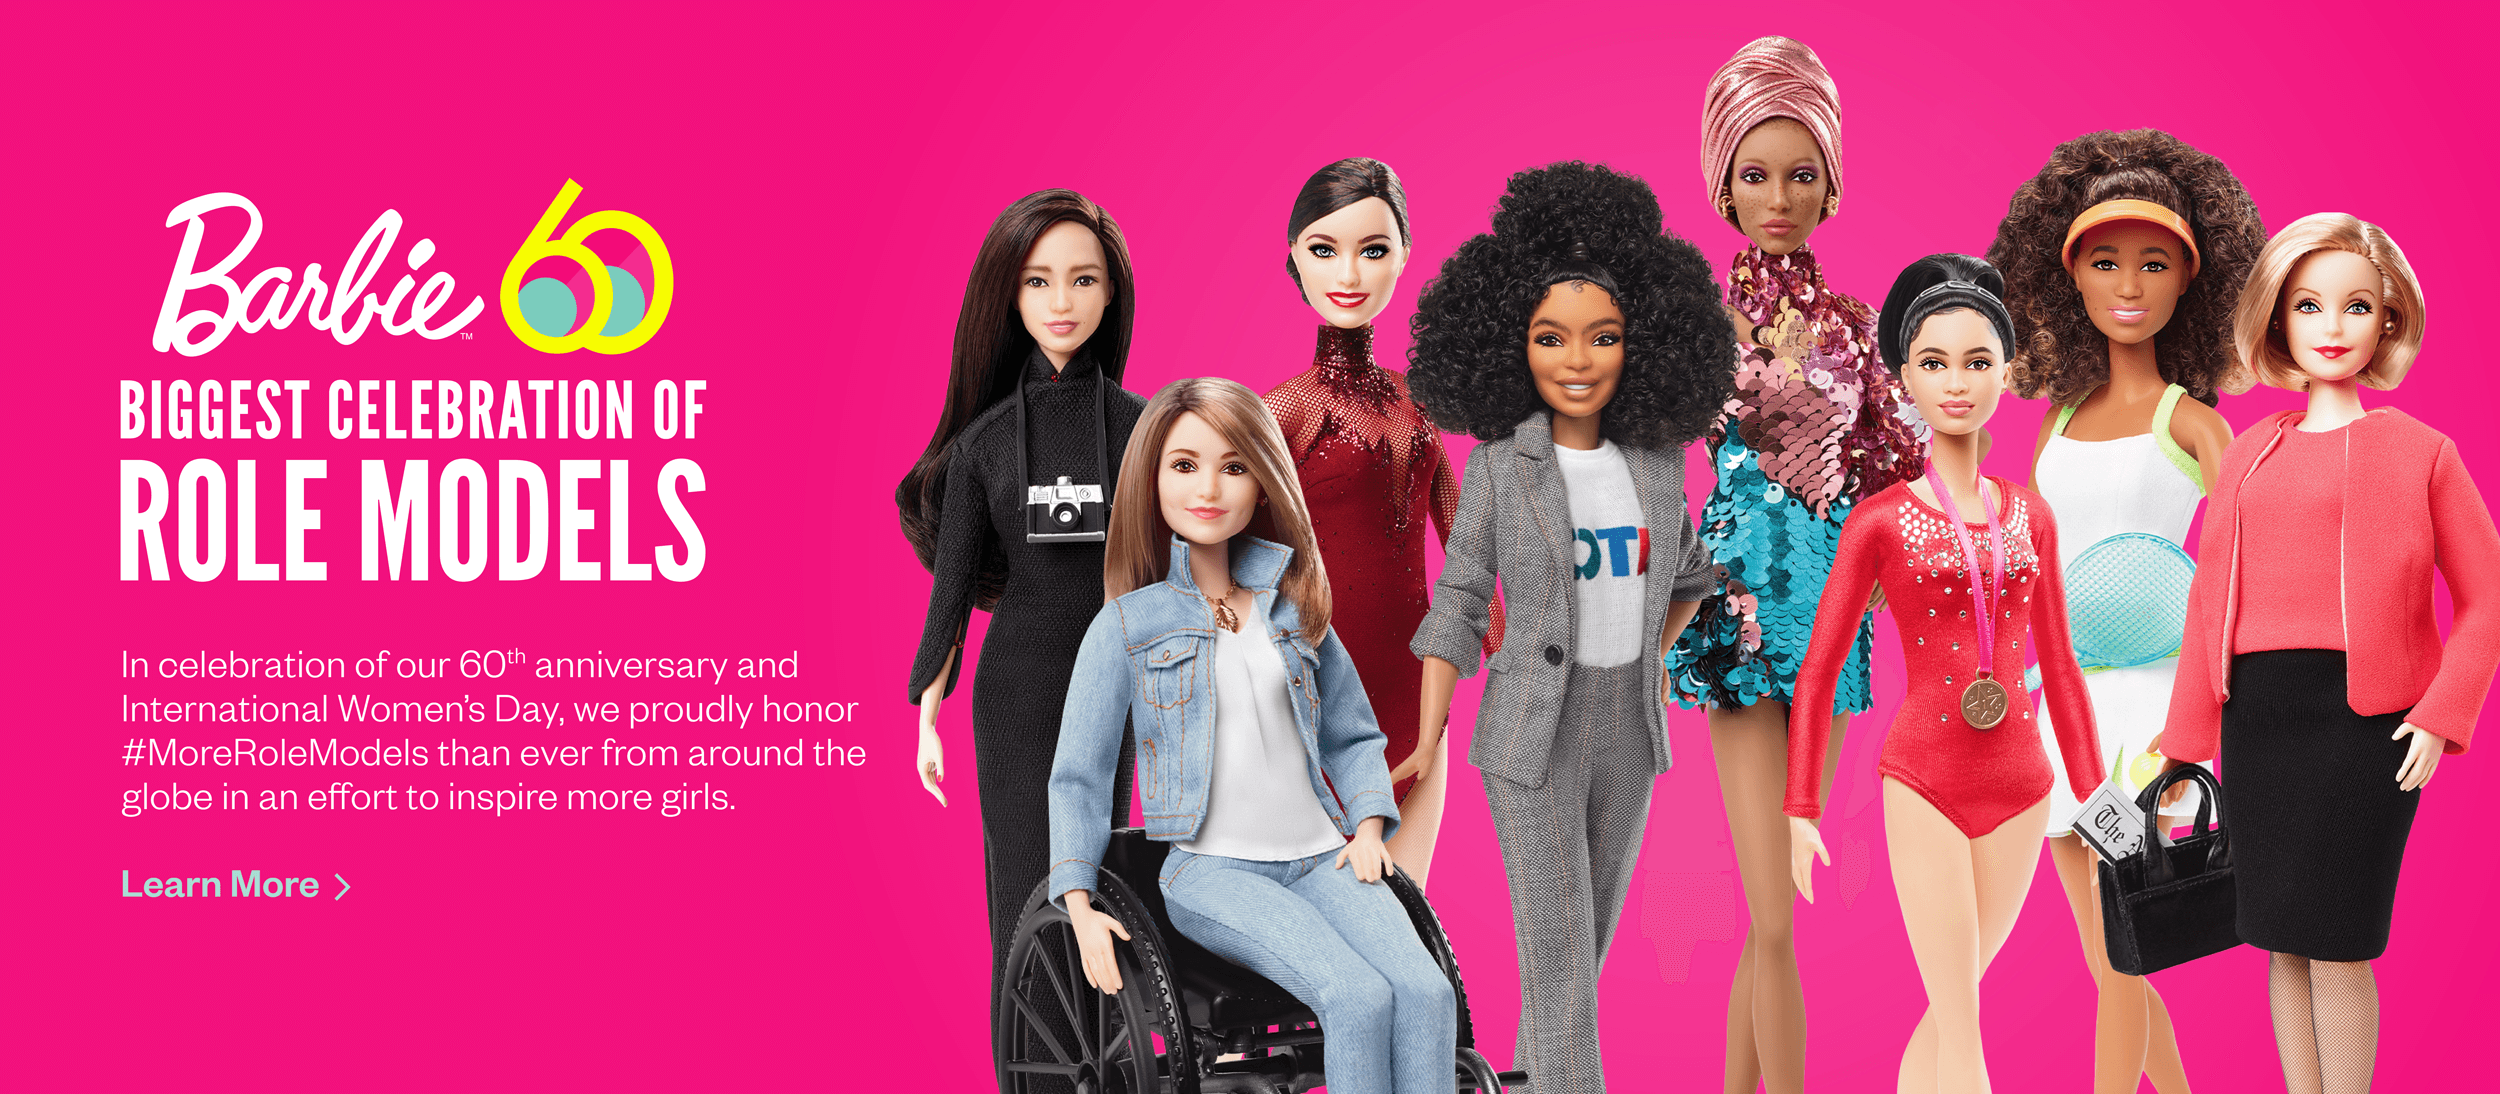 Barbie Biggest Celebration of Role Models